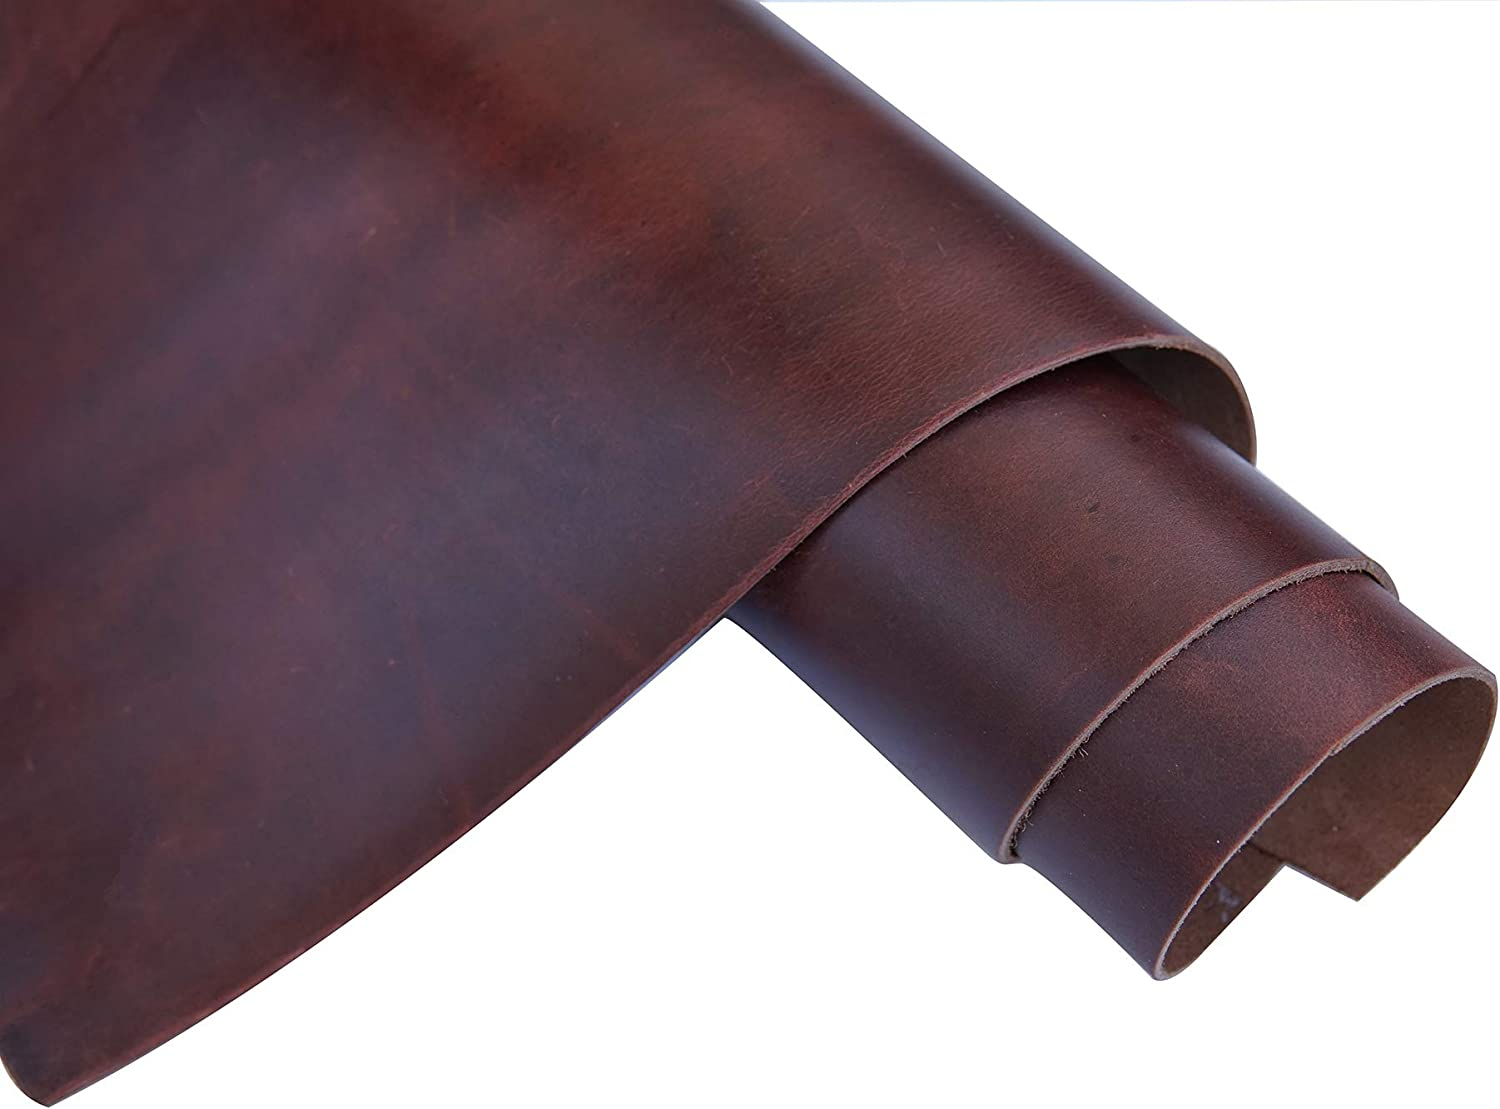 Dark Brown Leather Square 2.0mm Thick Finished Full Grain Cow Hide Leather Arts Crafts Tooling Sewing Hobby Workshop Crafting Leather Accessories 6X12 QYHQ